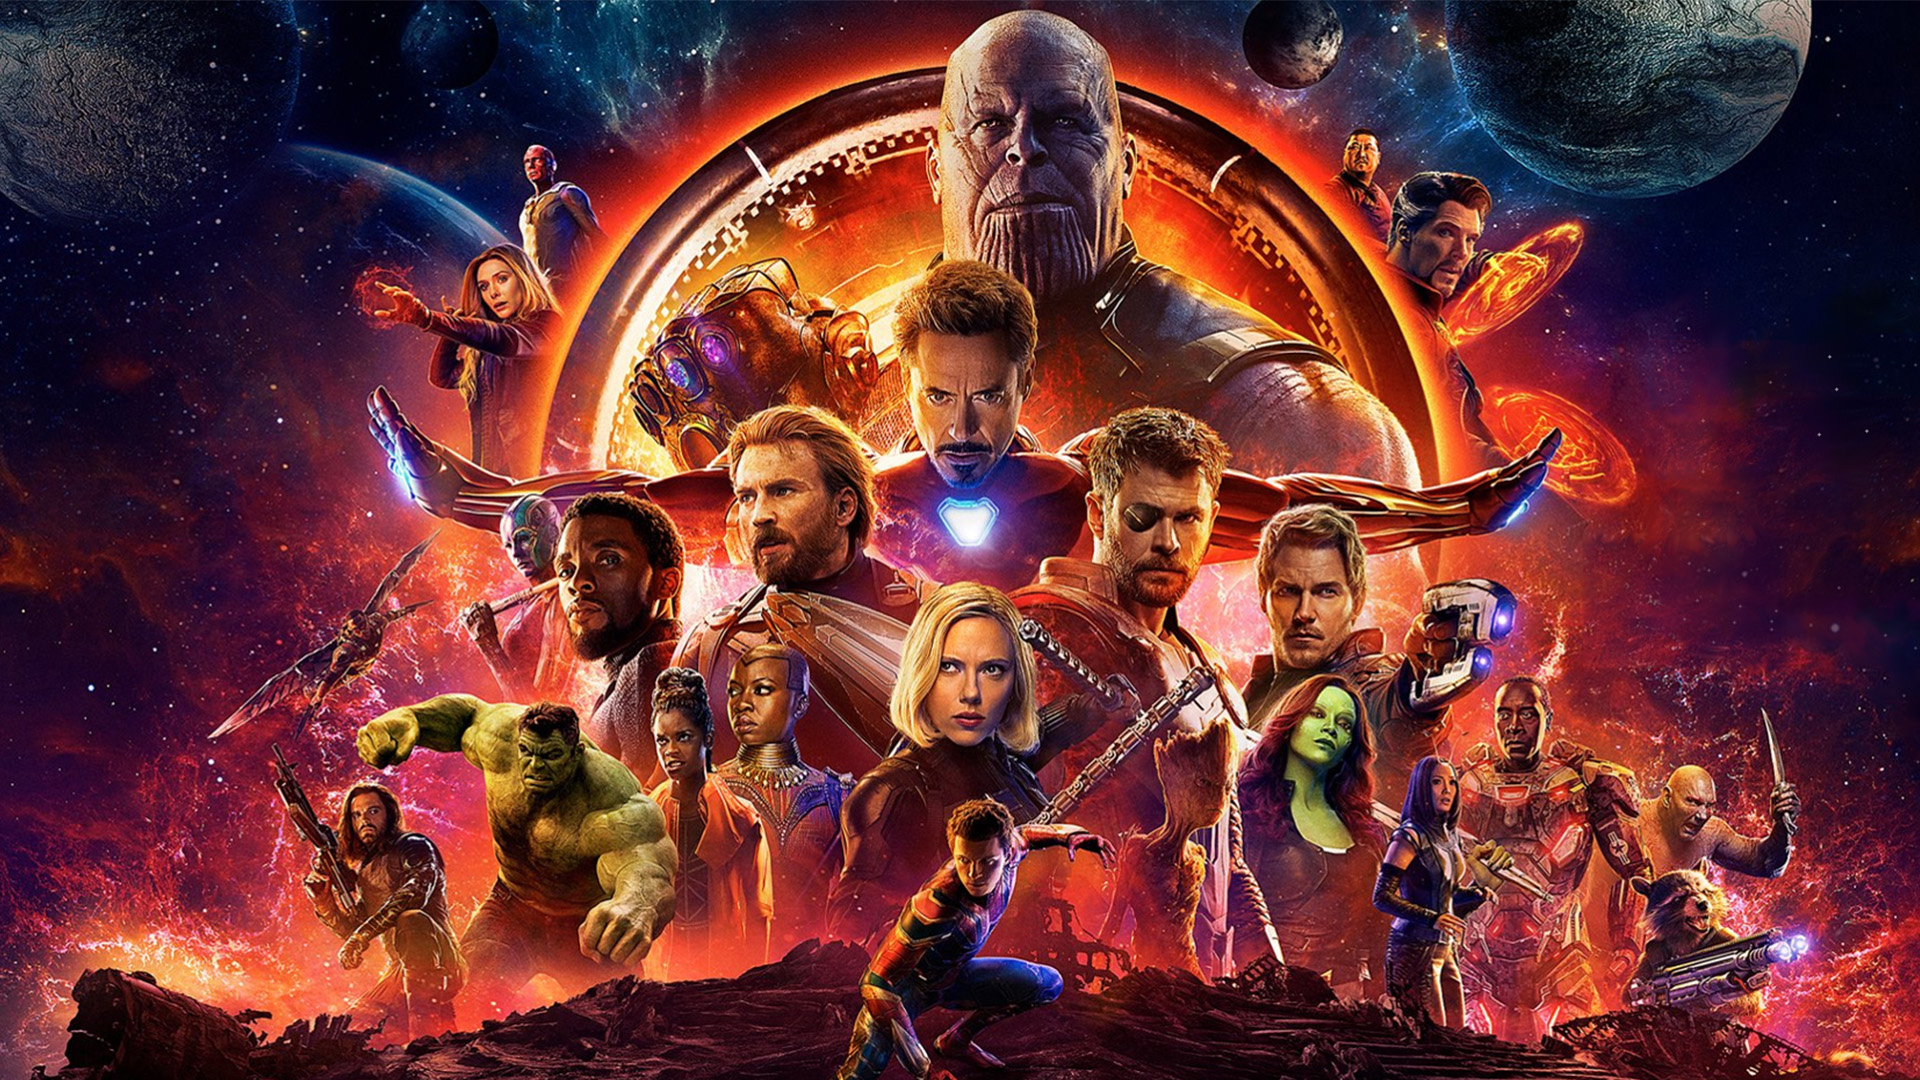 Avengers Infinity War Posters Highlight 5 Teams Led By Iron Man